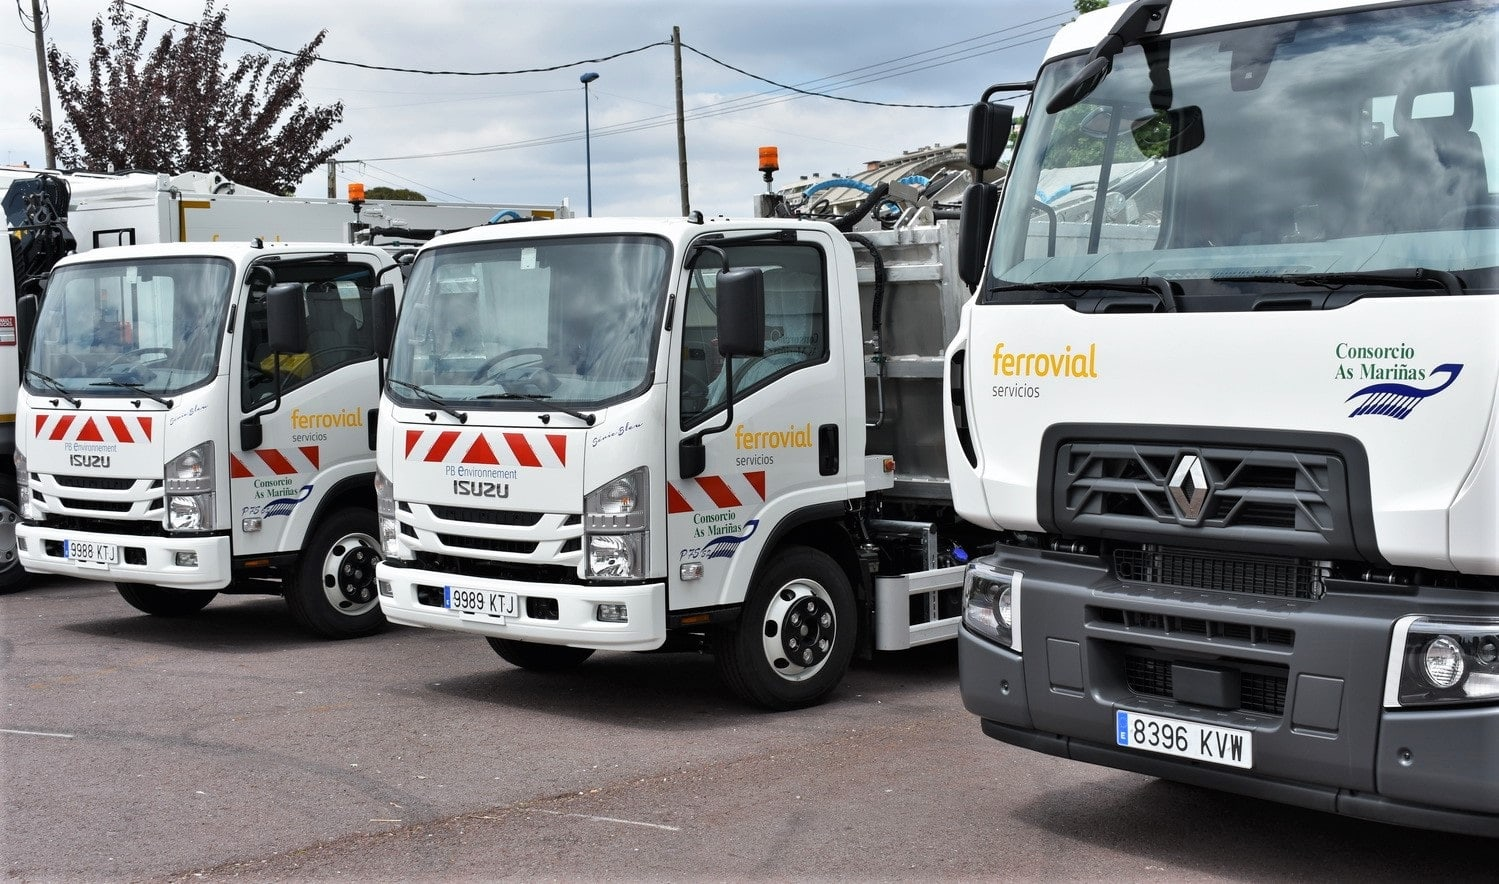 The new vehicles were chosen according to criteria on sustainability, efficiency, and technical quality